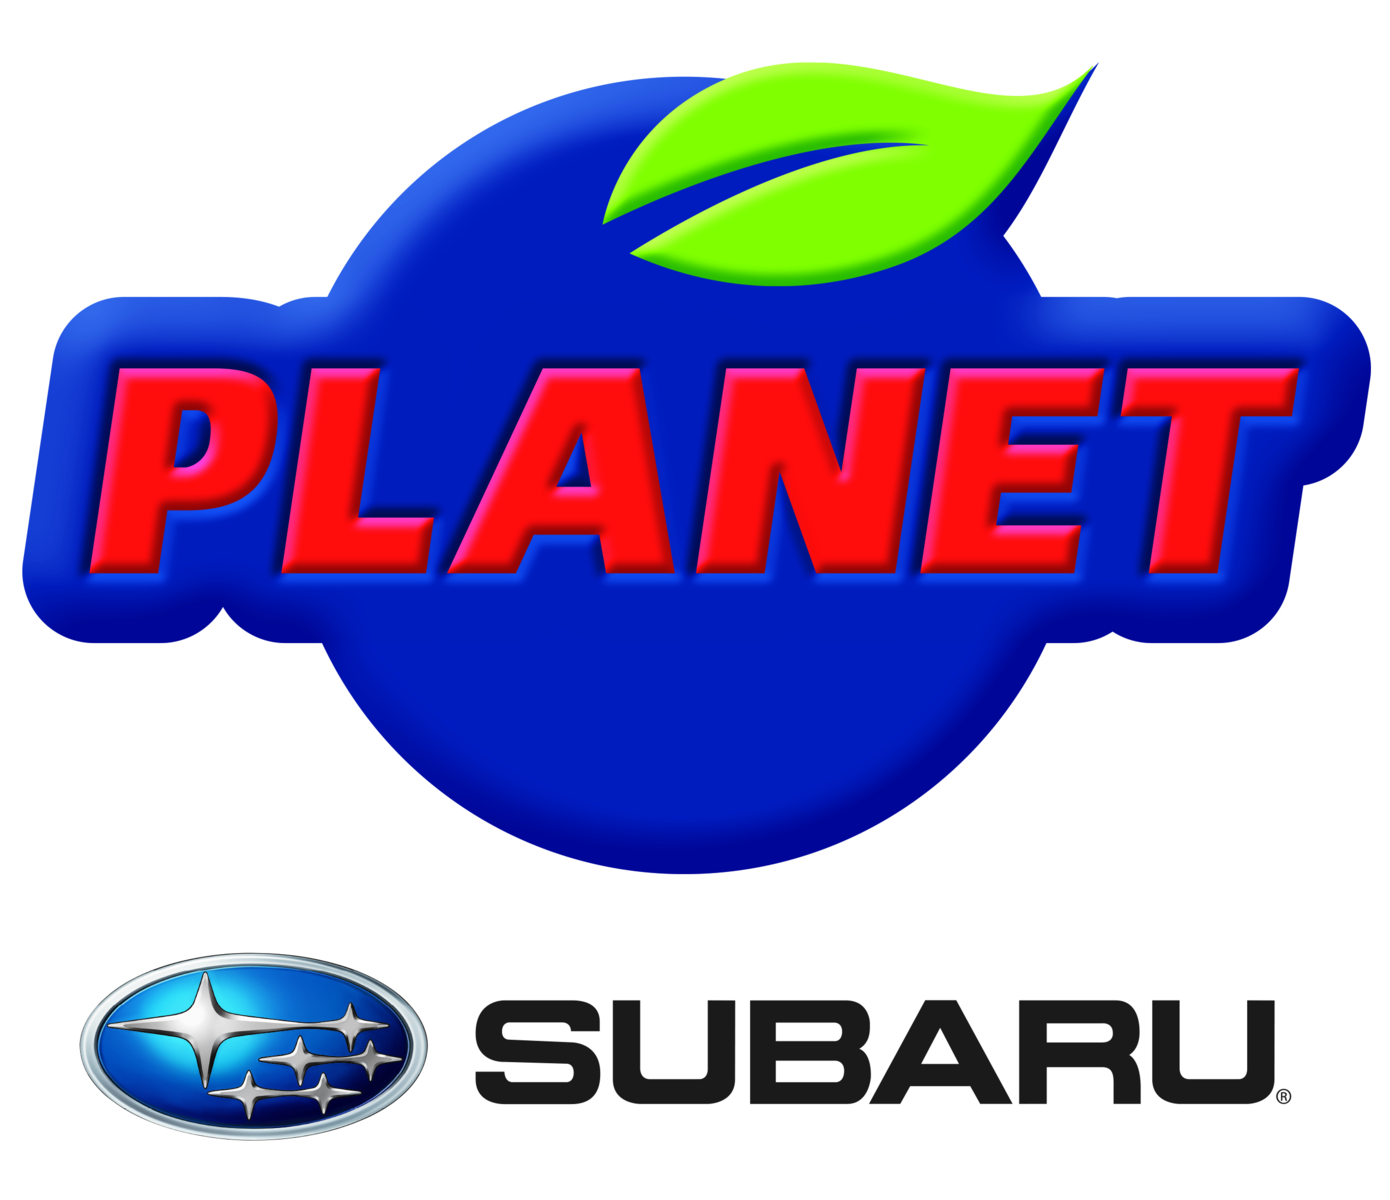 Planet Subaru - Hanover, MA: Read Consumer reviews, Browse Used and